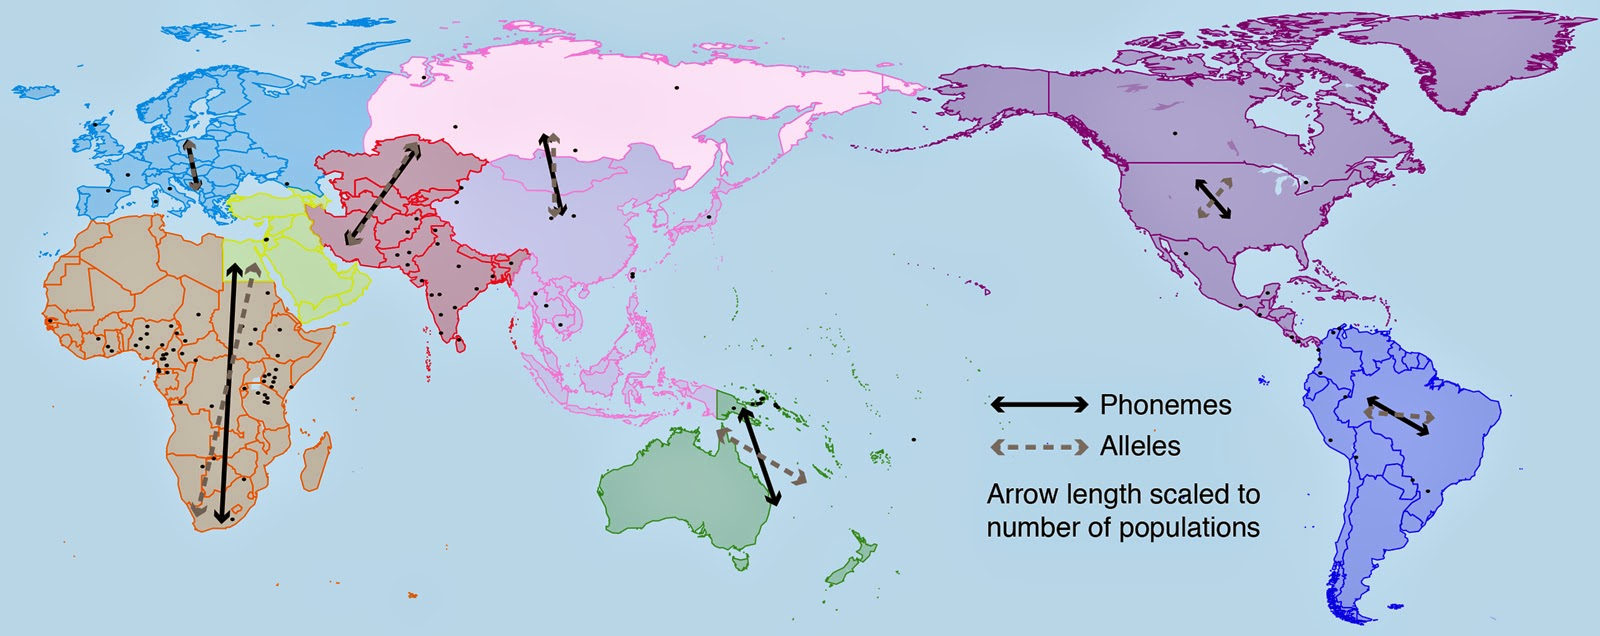 Human dispersal and the evolution of languages show strong link